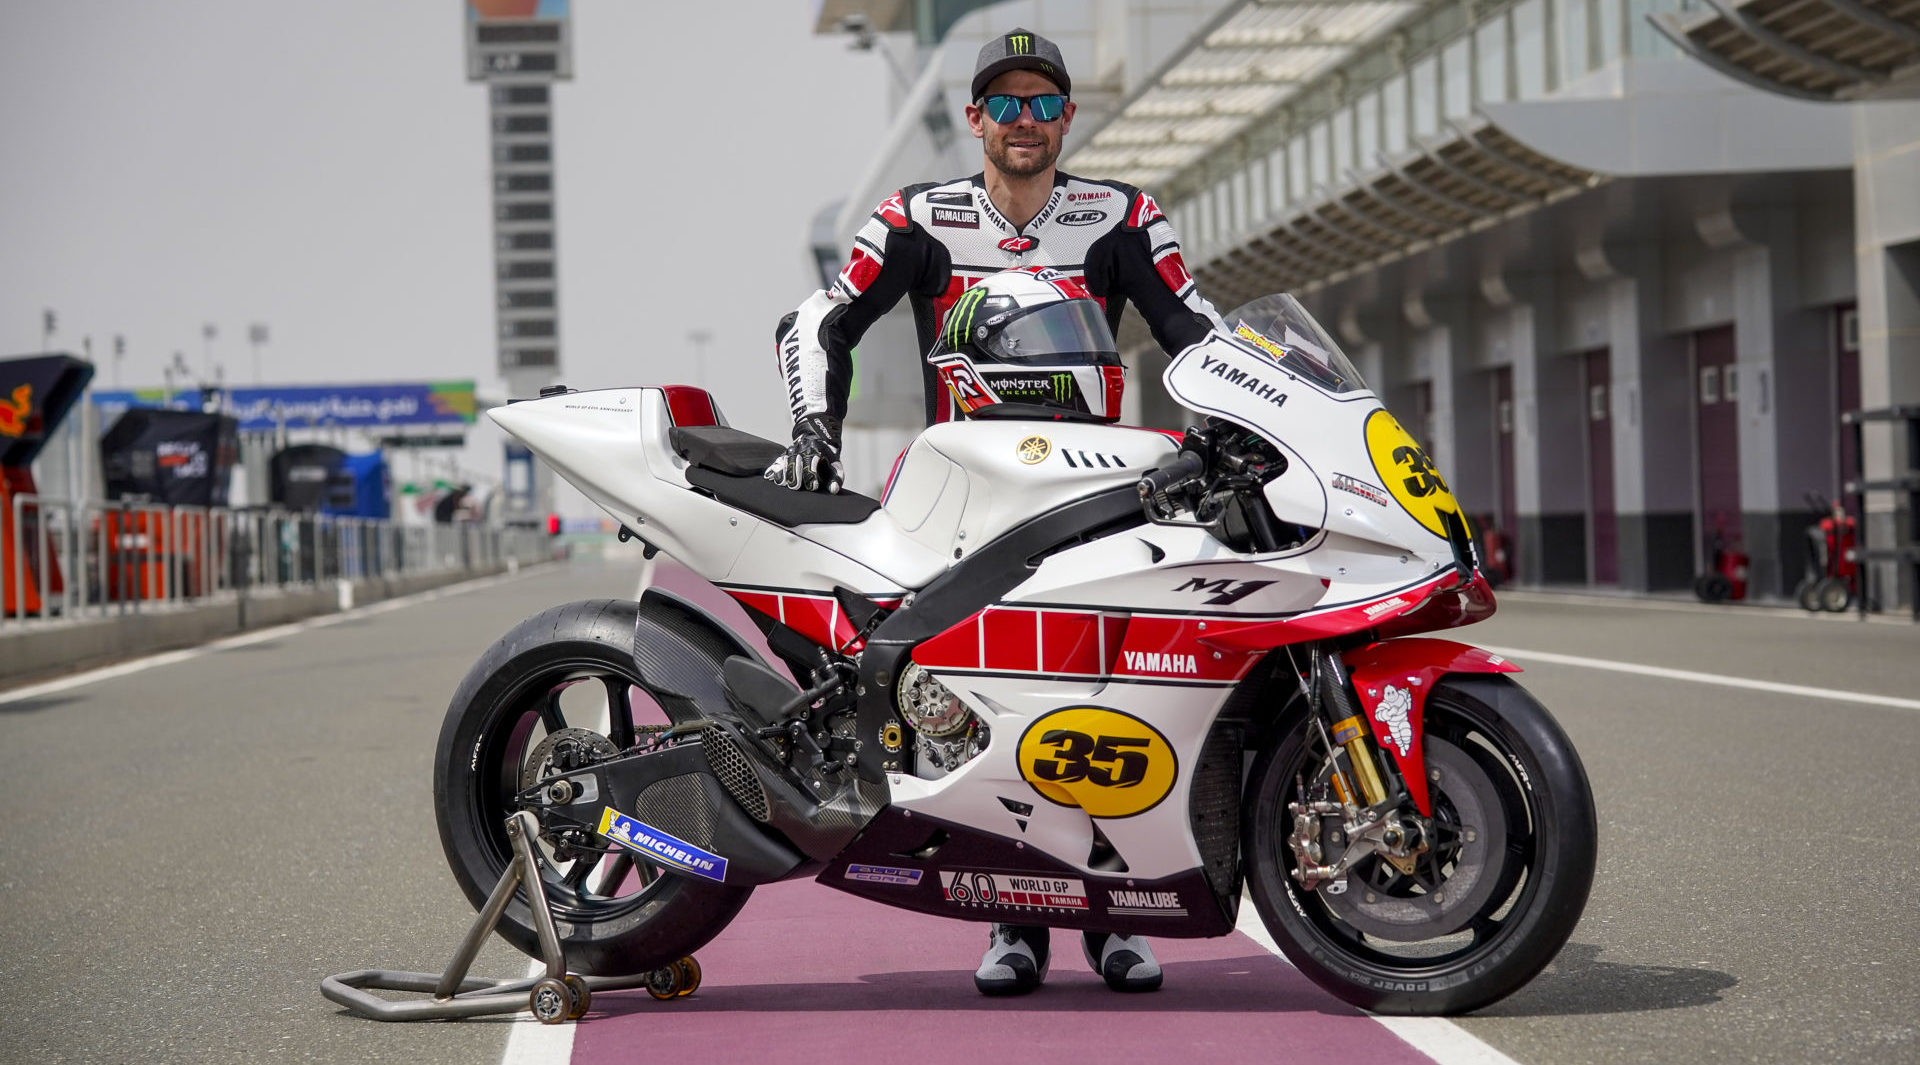 Yamaha MotoGP test rider Cal Crutchlow and his YZR-M1 in special livery to celebrate Yamaha's 60th anniversary in Grand Prix racing. Photo courtesy Yamaha.